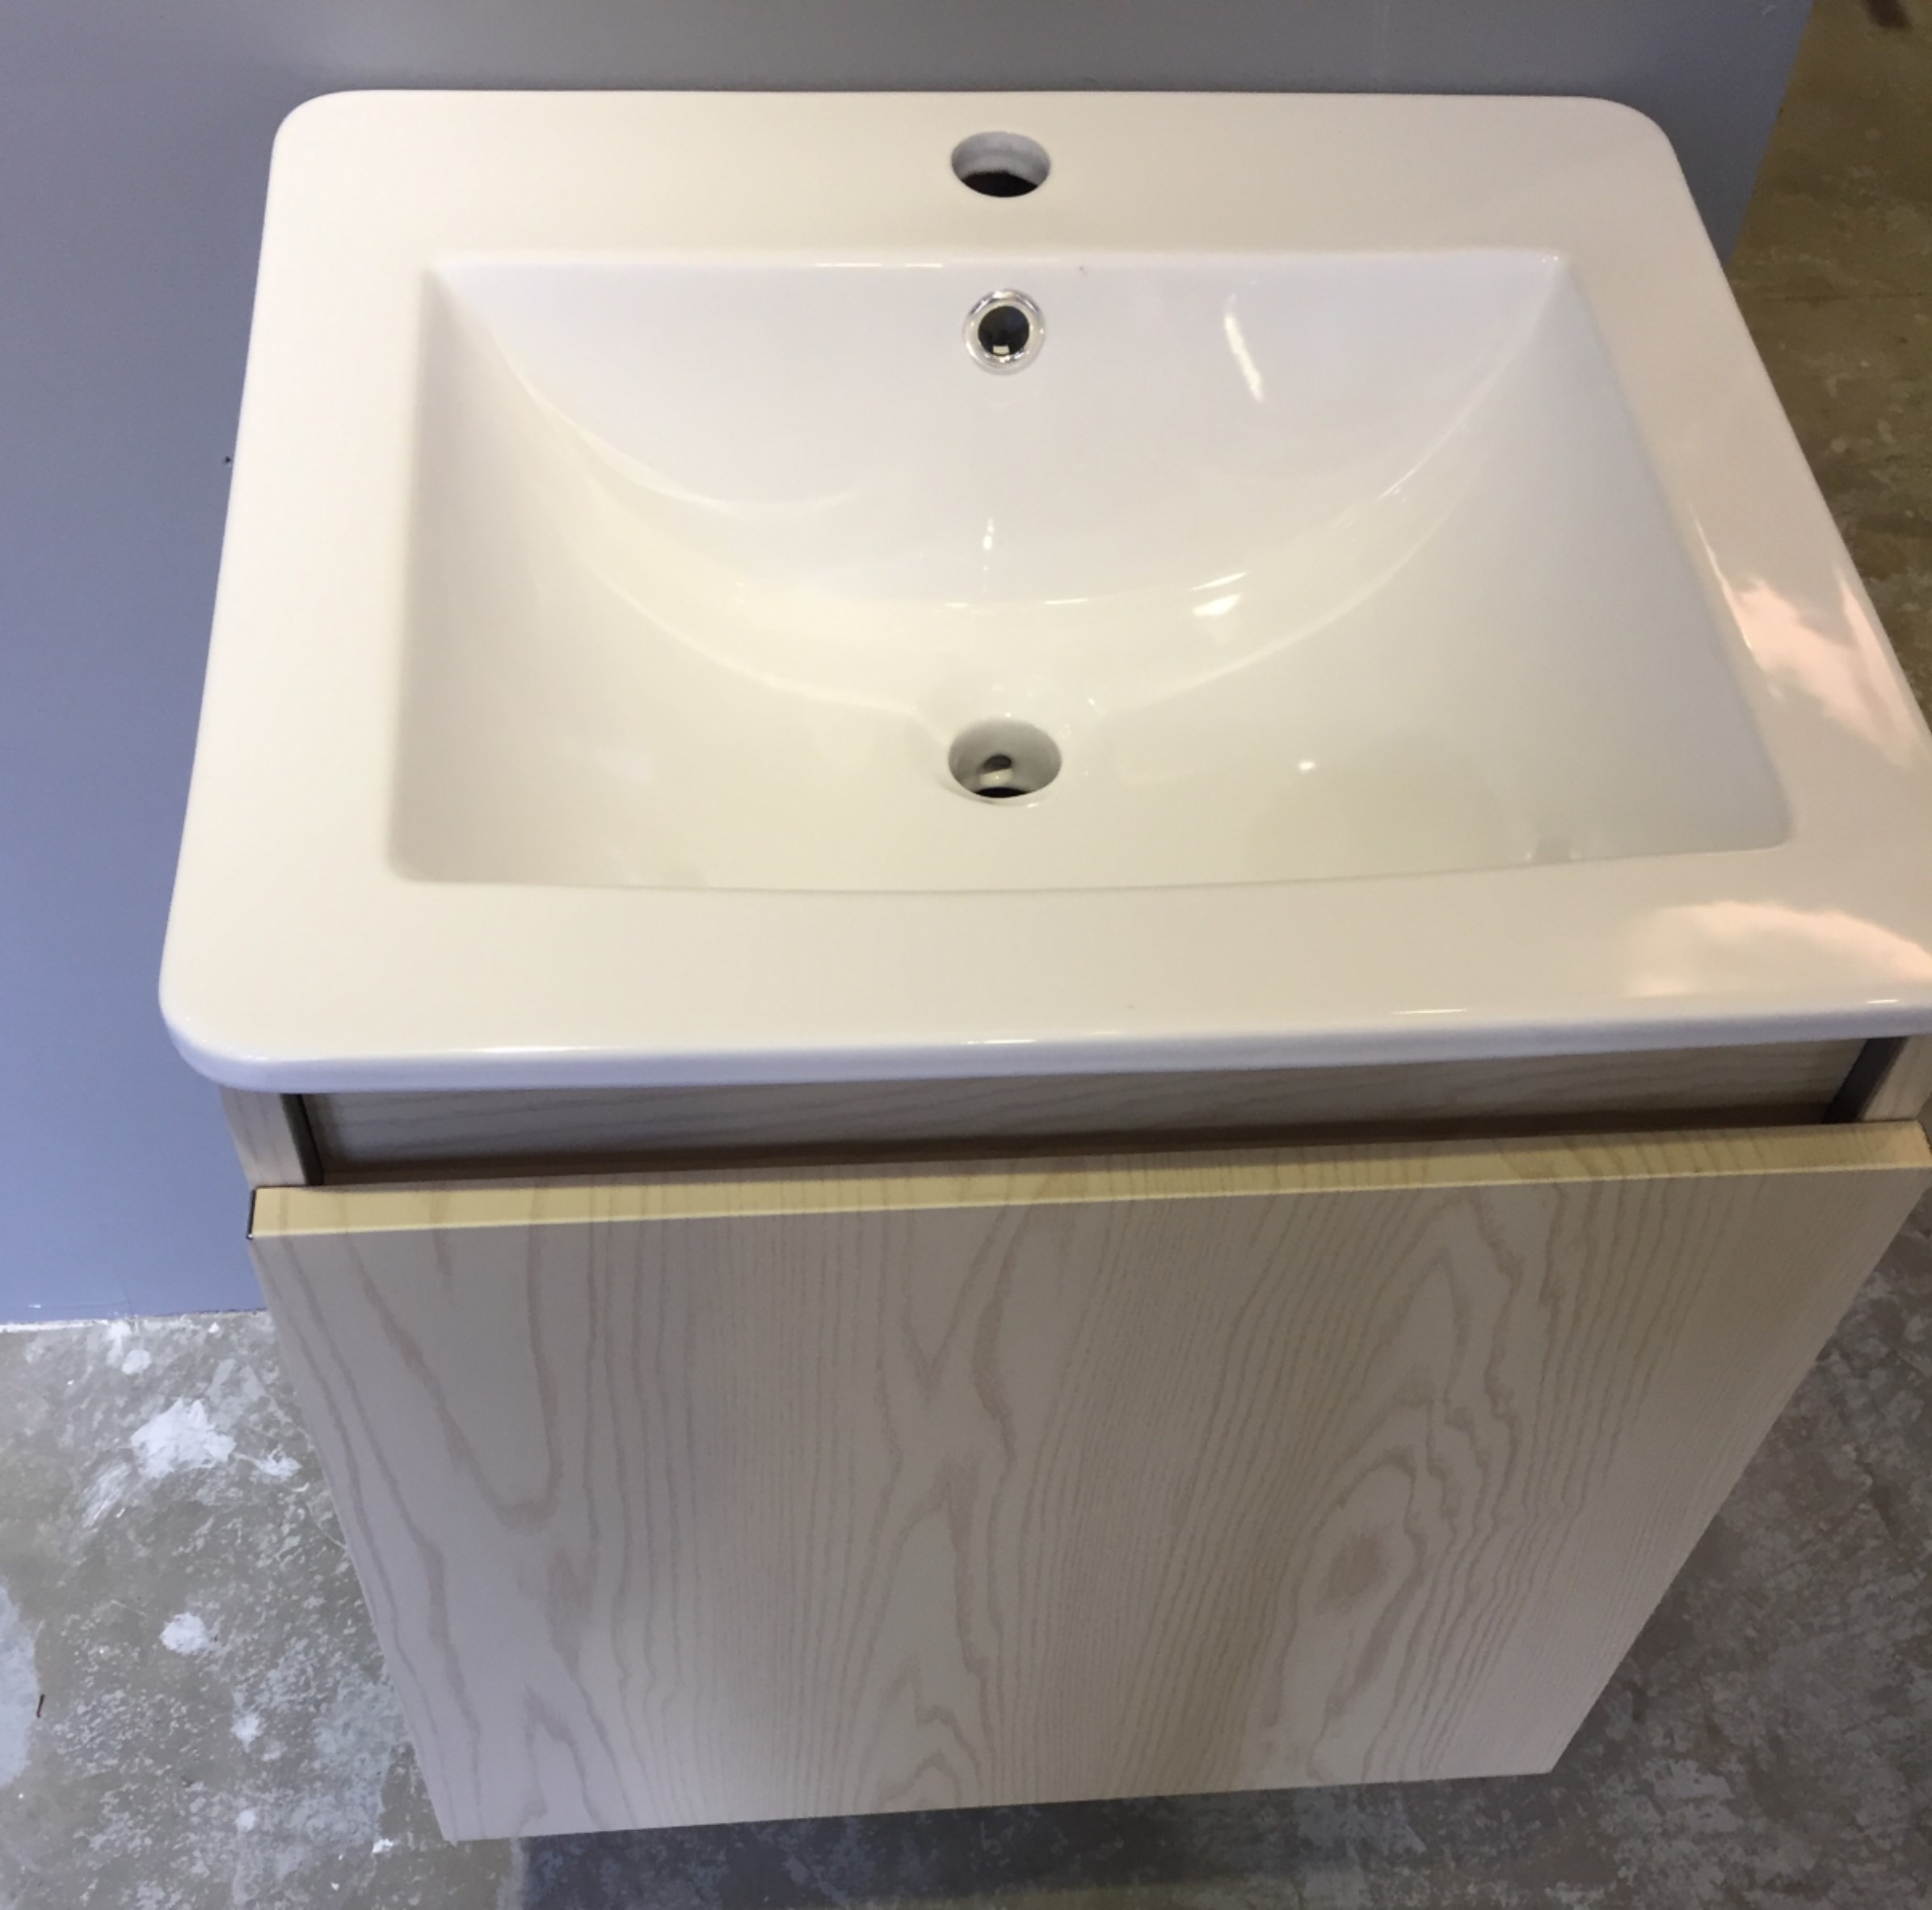 Smc1708 Hd21 Stainless Steel Basin Cabinet Top View Bacera